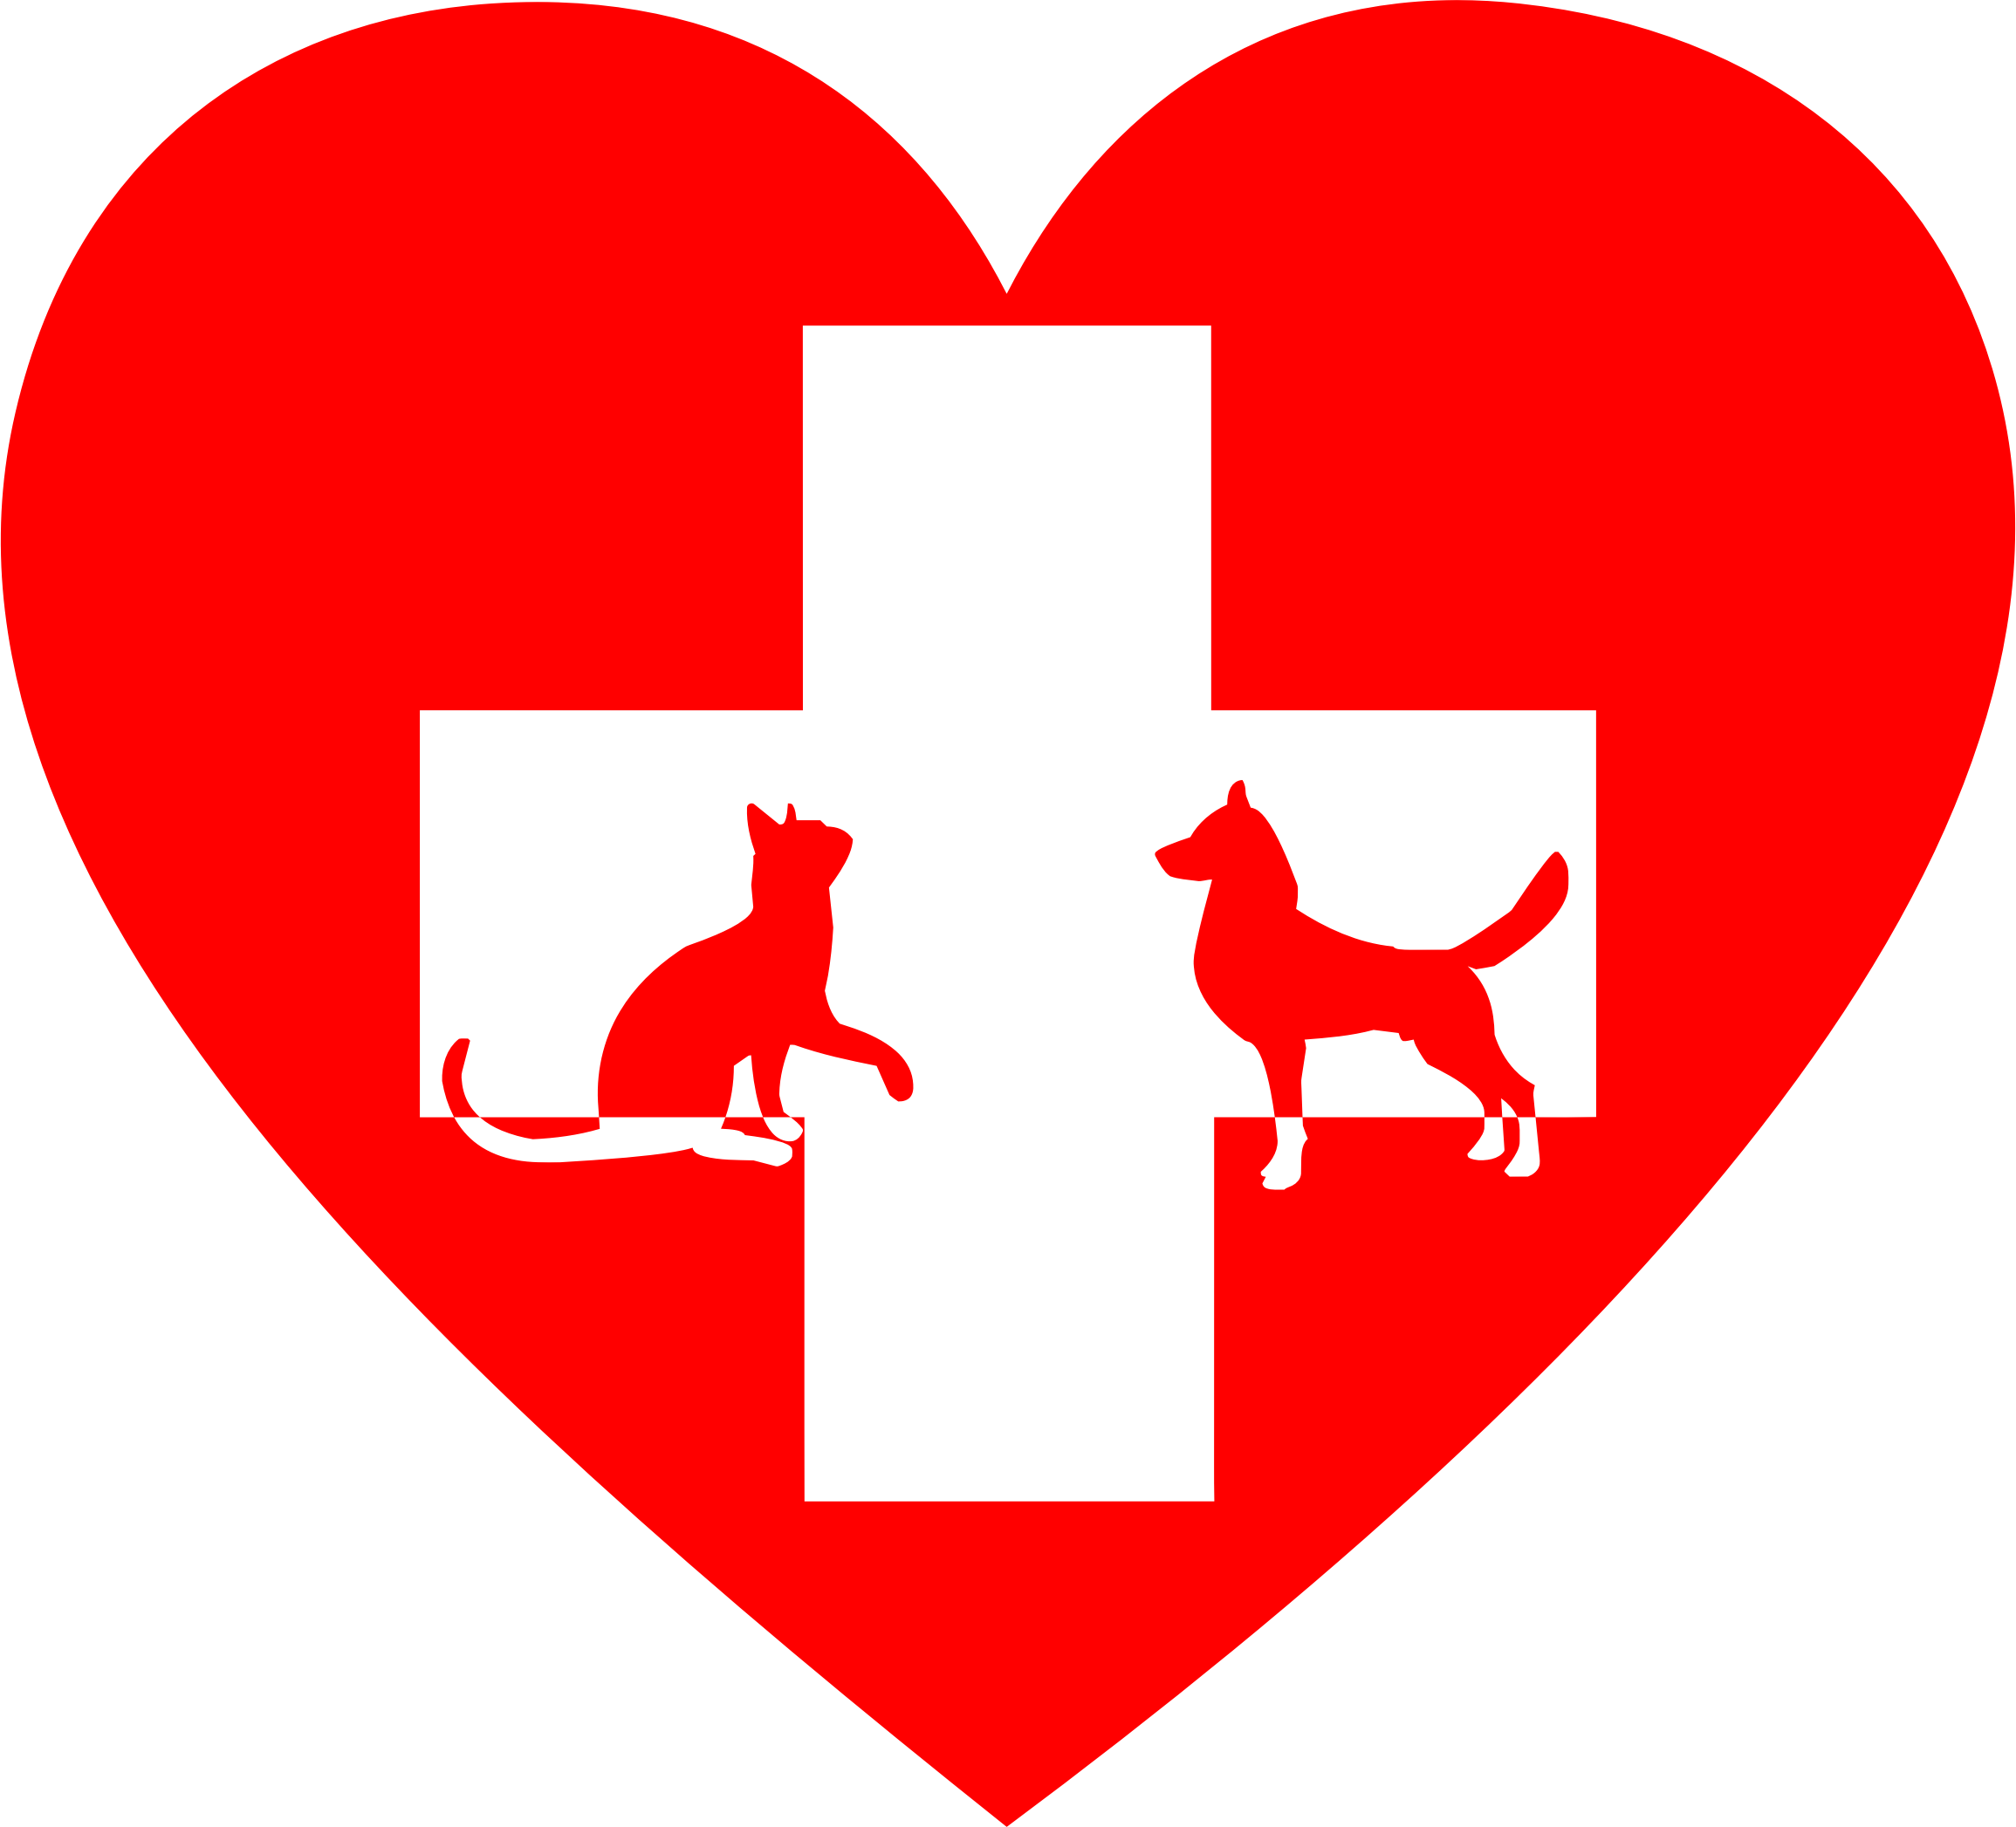 Veterinarian clipart. Veterinary first aid heart